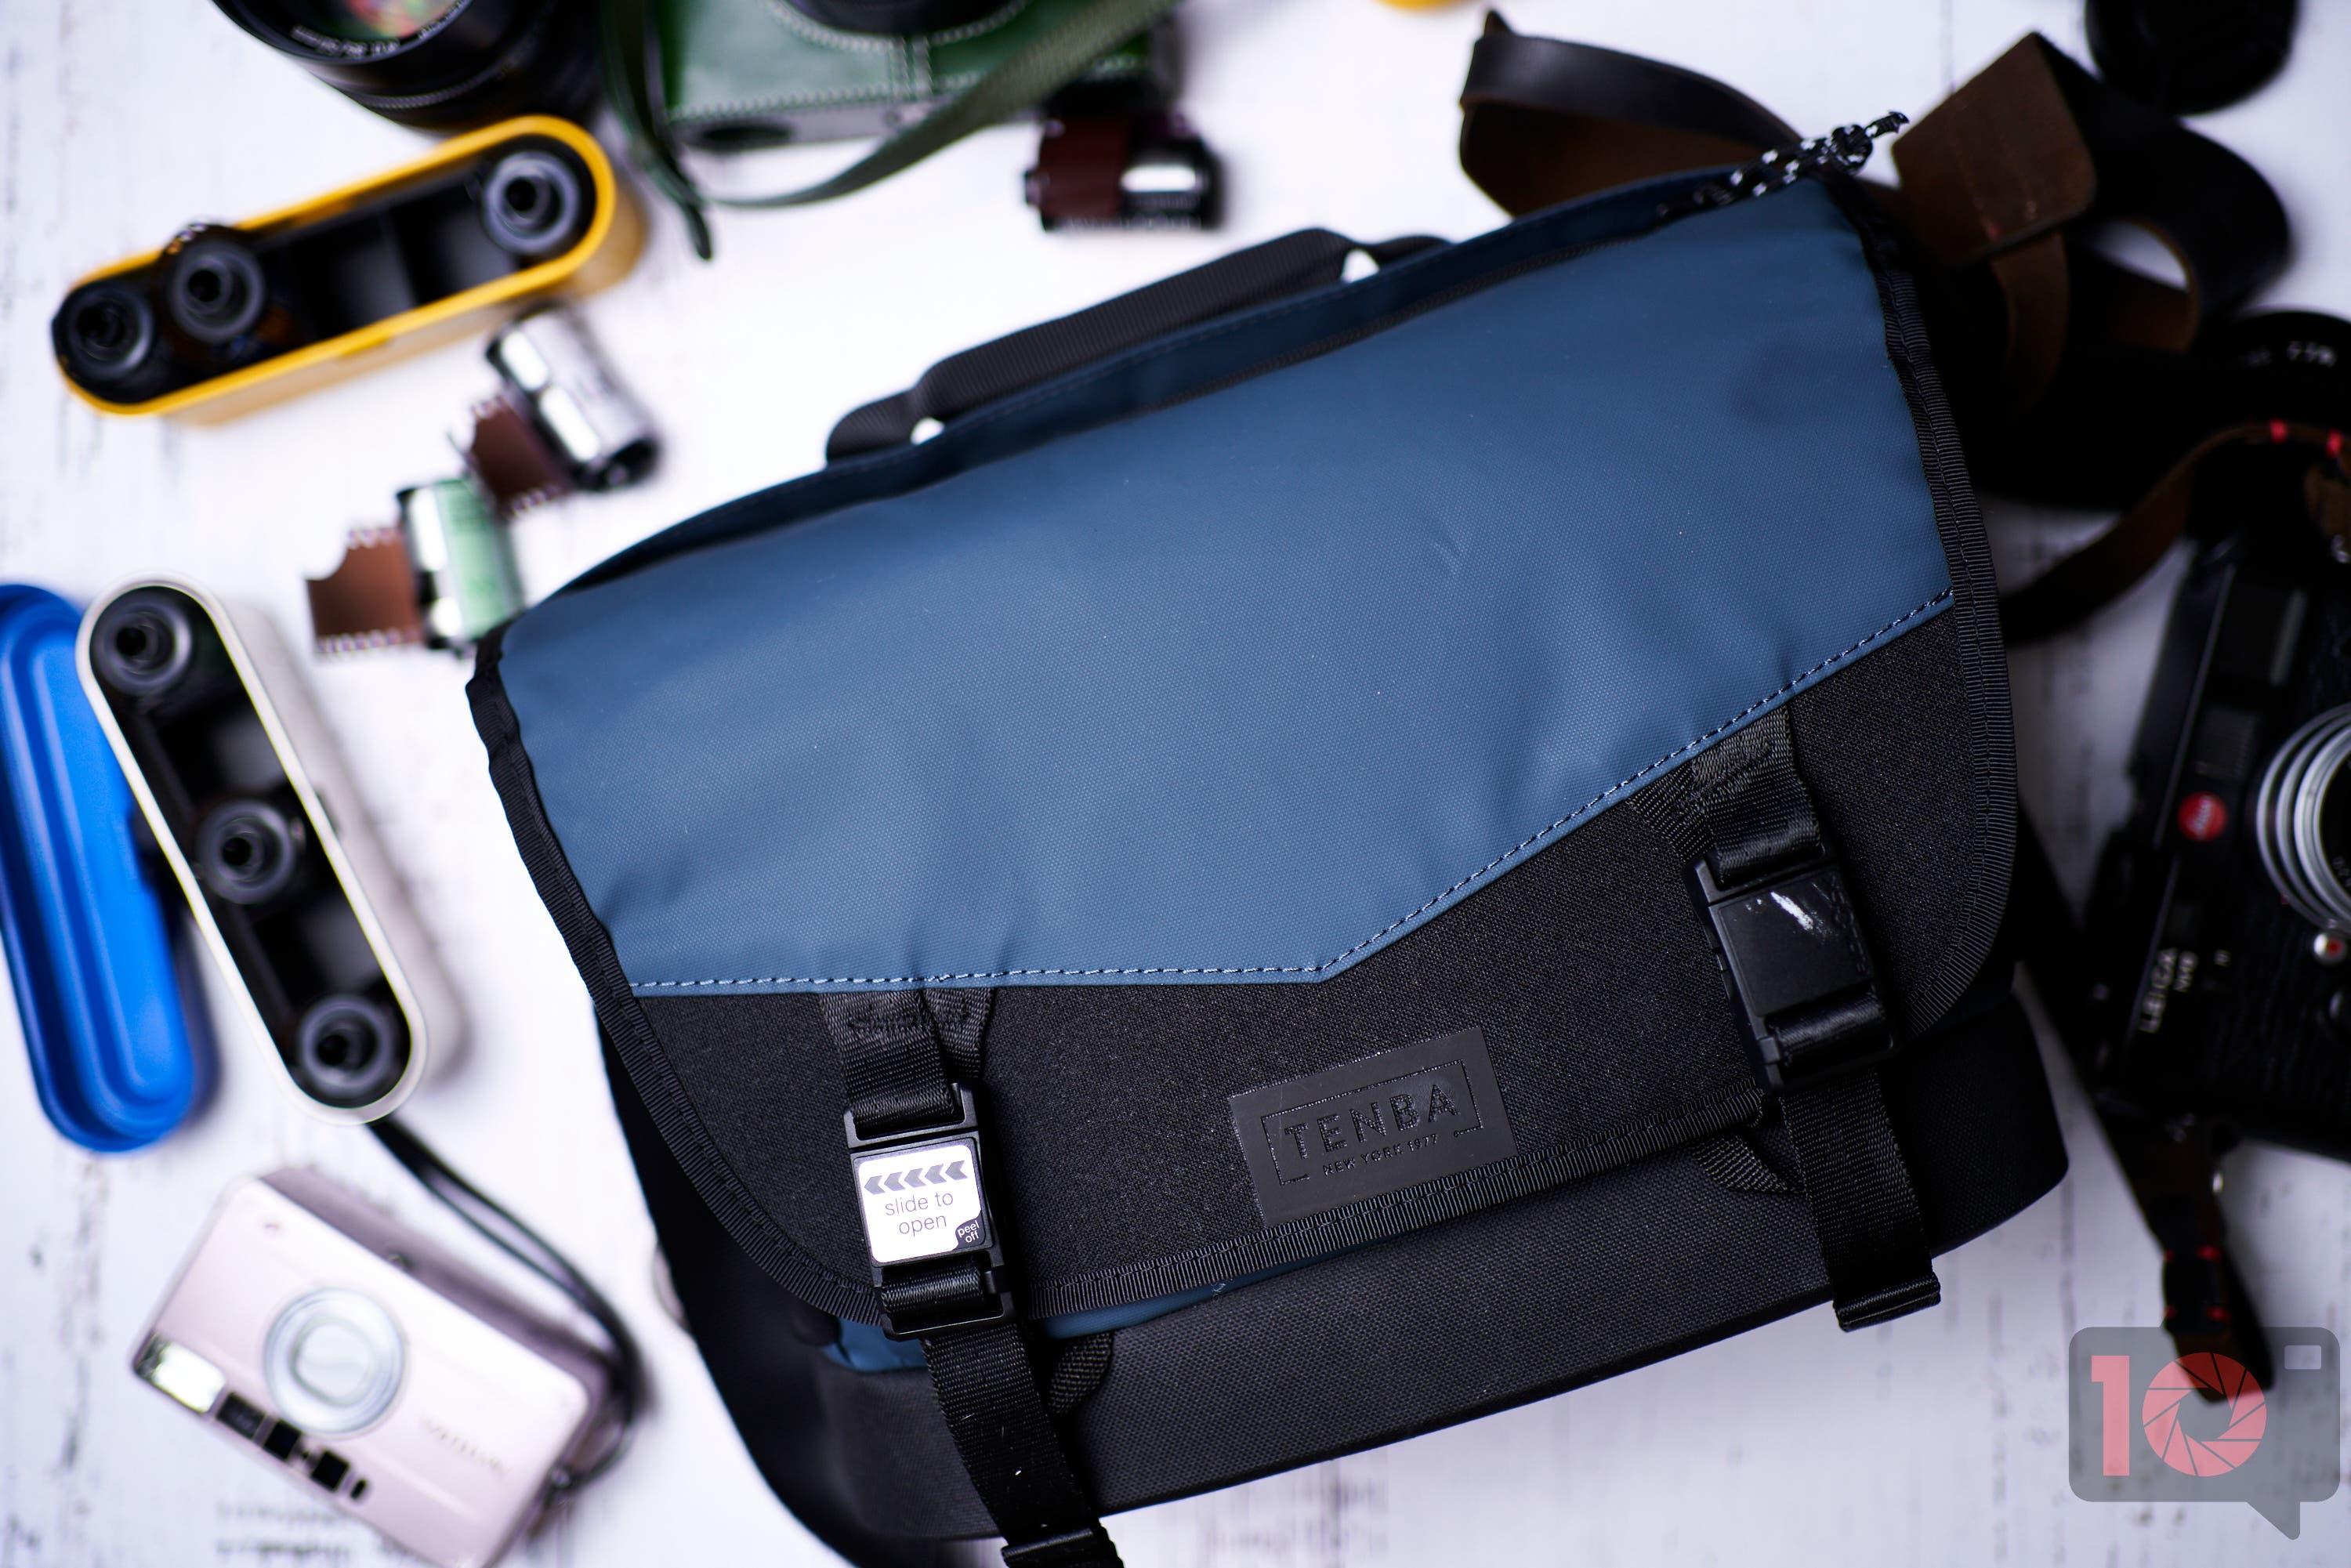 Bring Just What You Need. Tenba DNA 9 Bag Review.